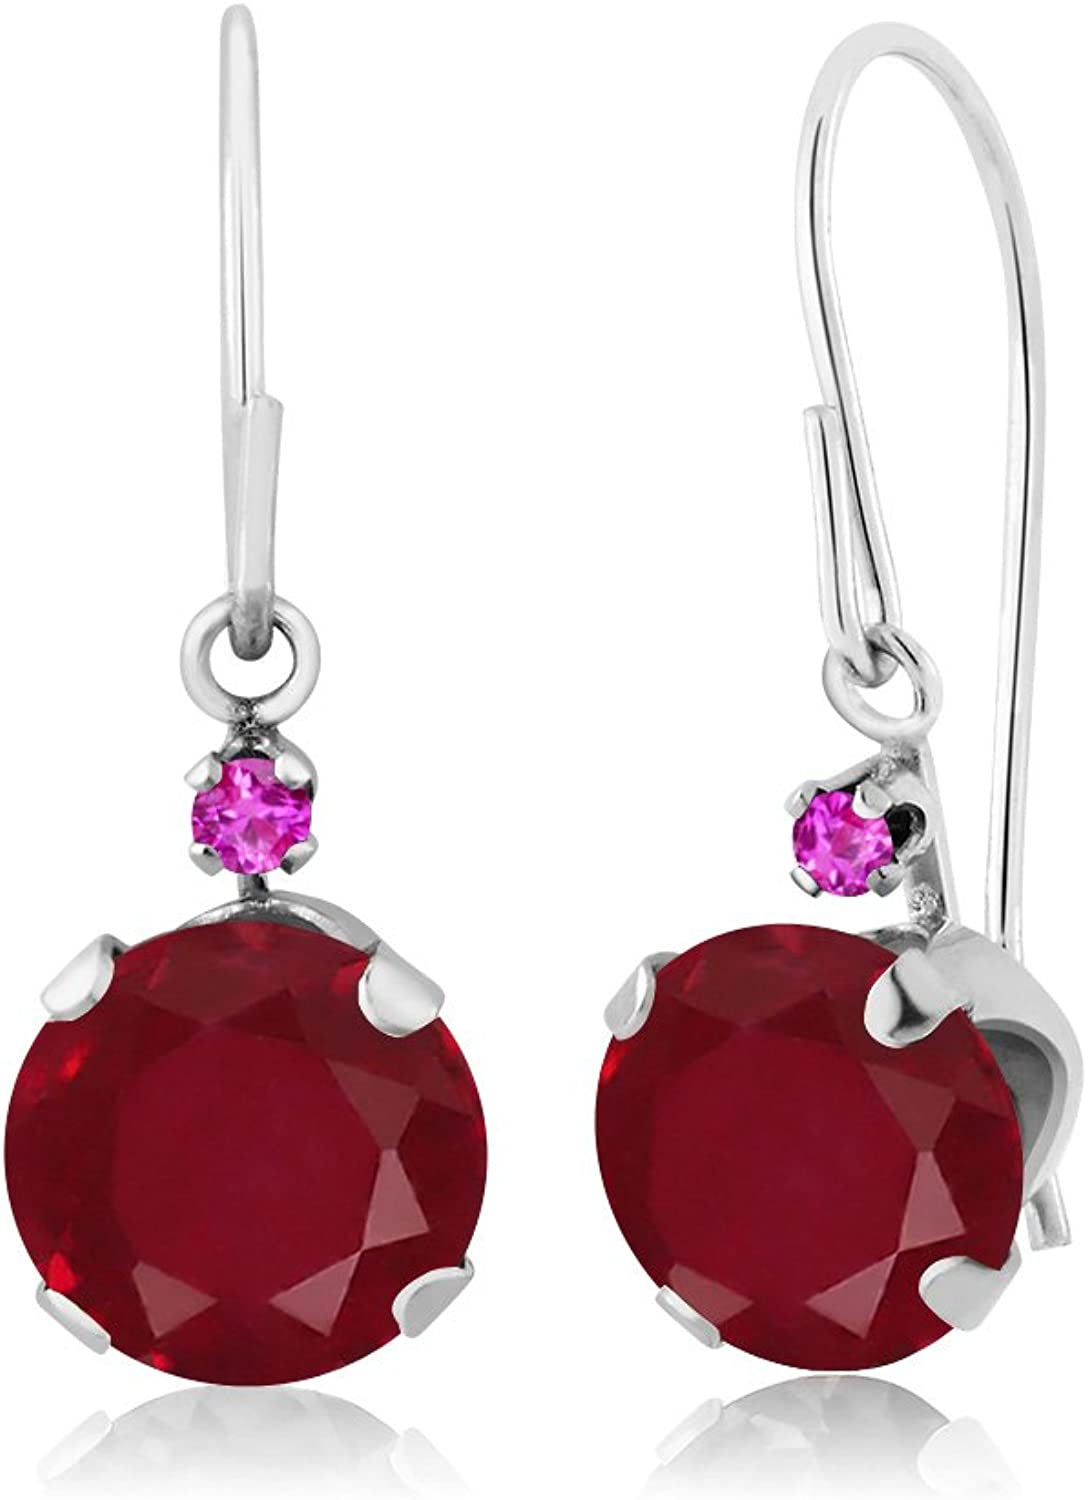 2.14 Ct Round Red Ruby Pink Sapphire 14K White gold Earrings